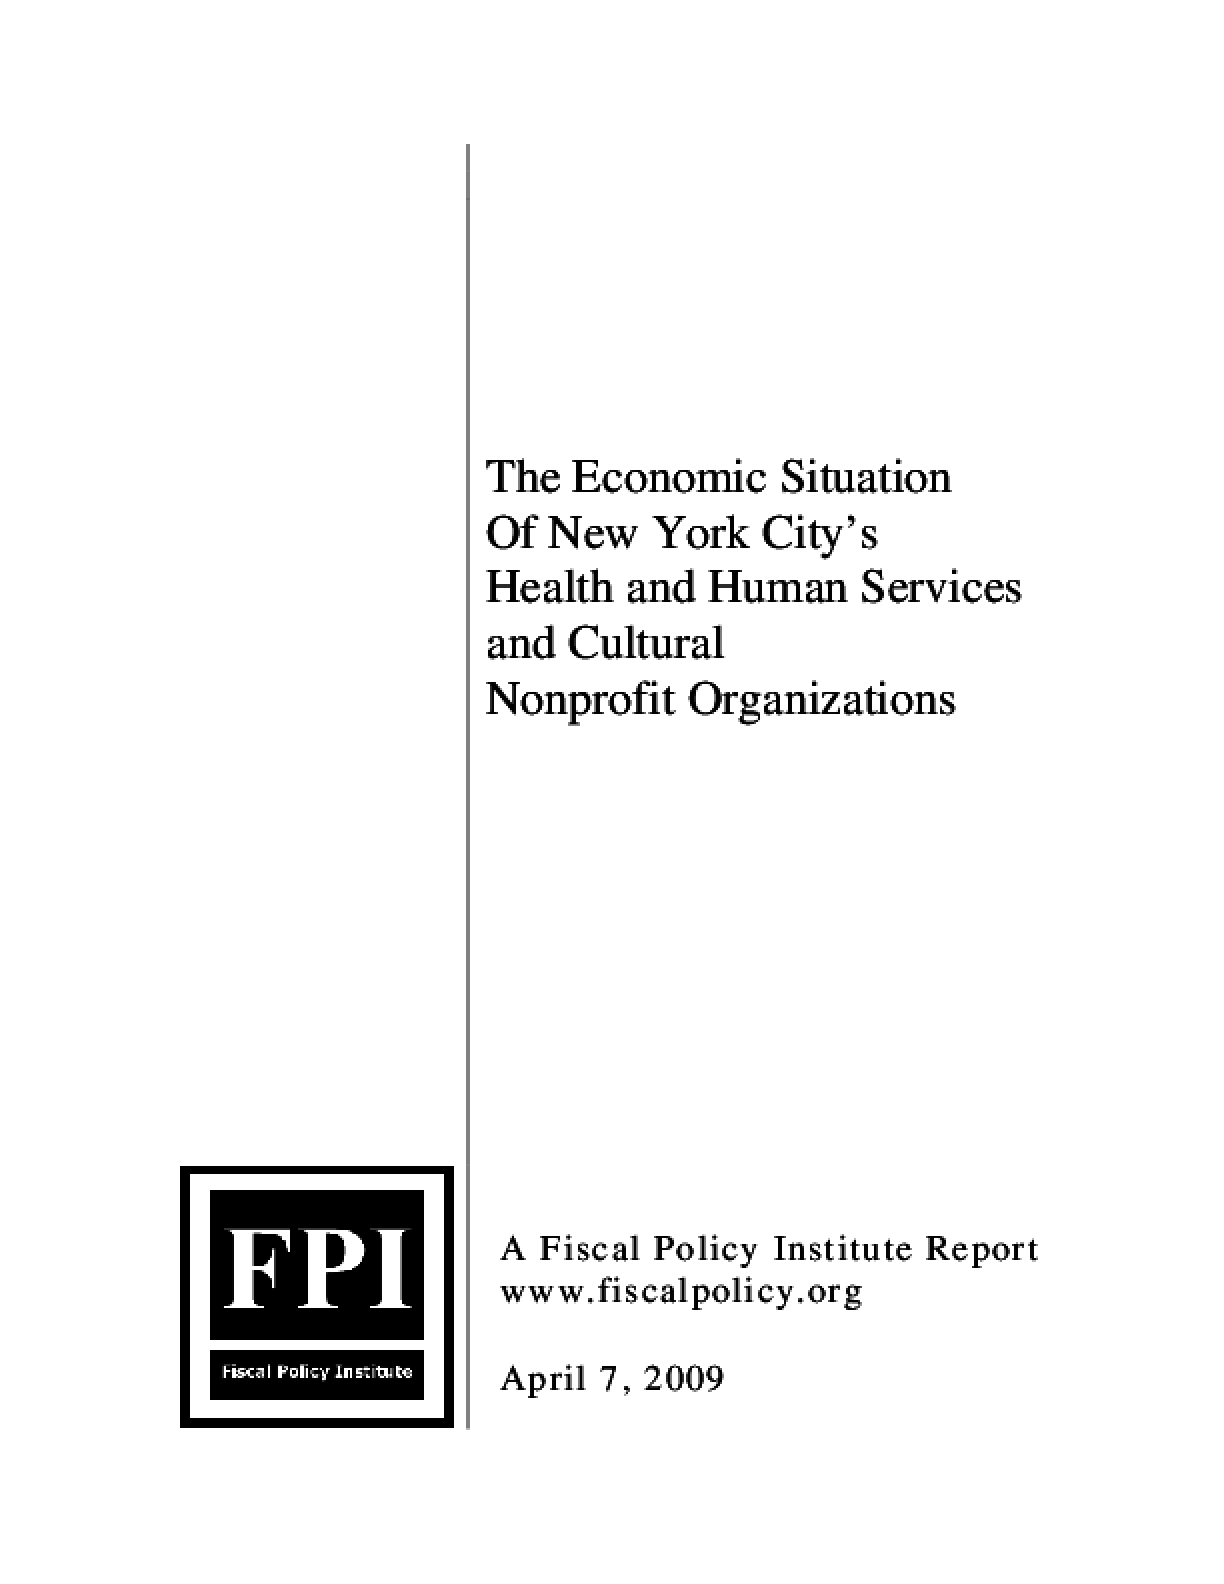 The Economic Situation of New York City's Health and Human Services and Cultural Nonprofit Organizations